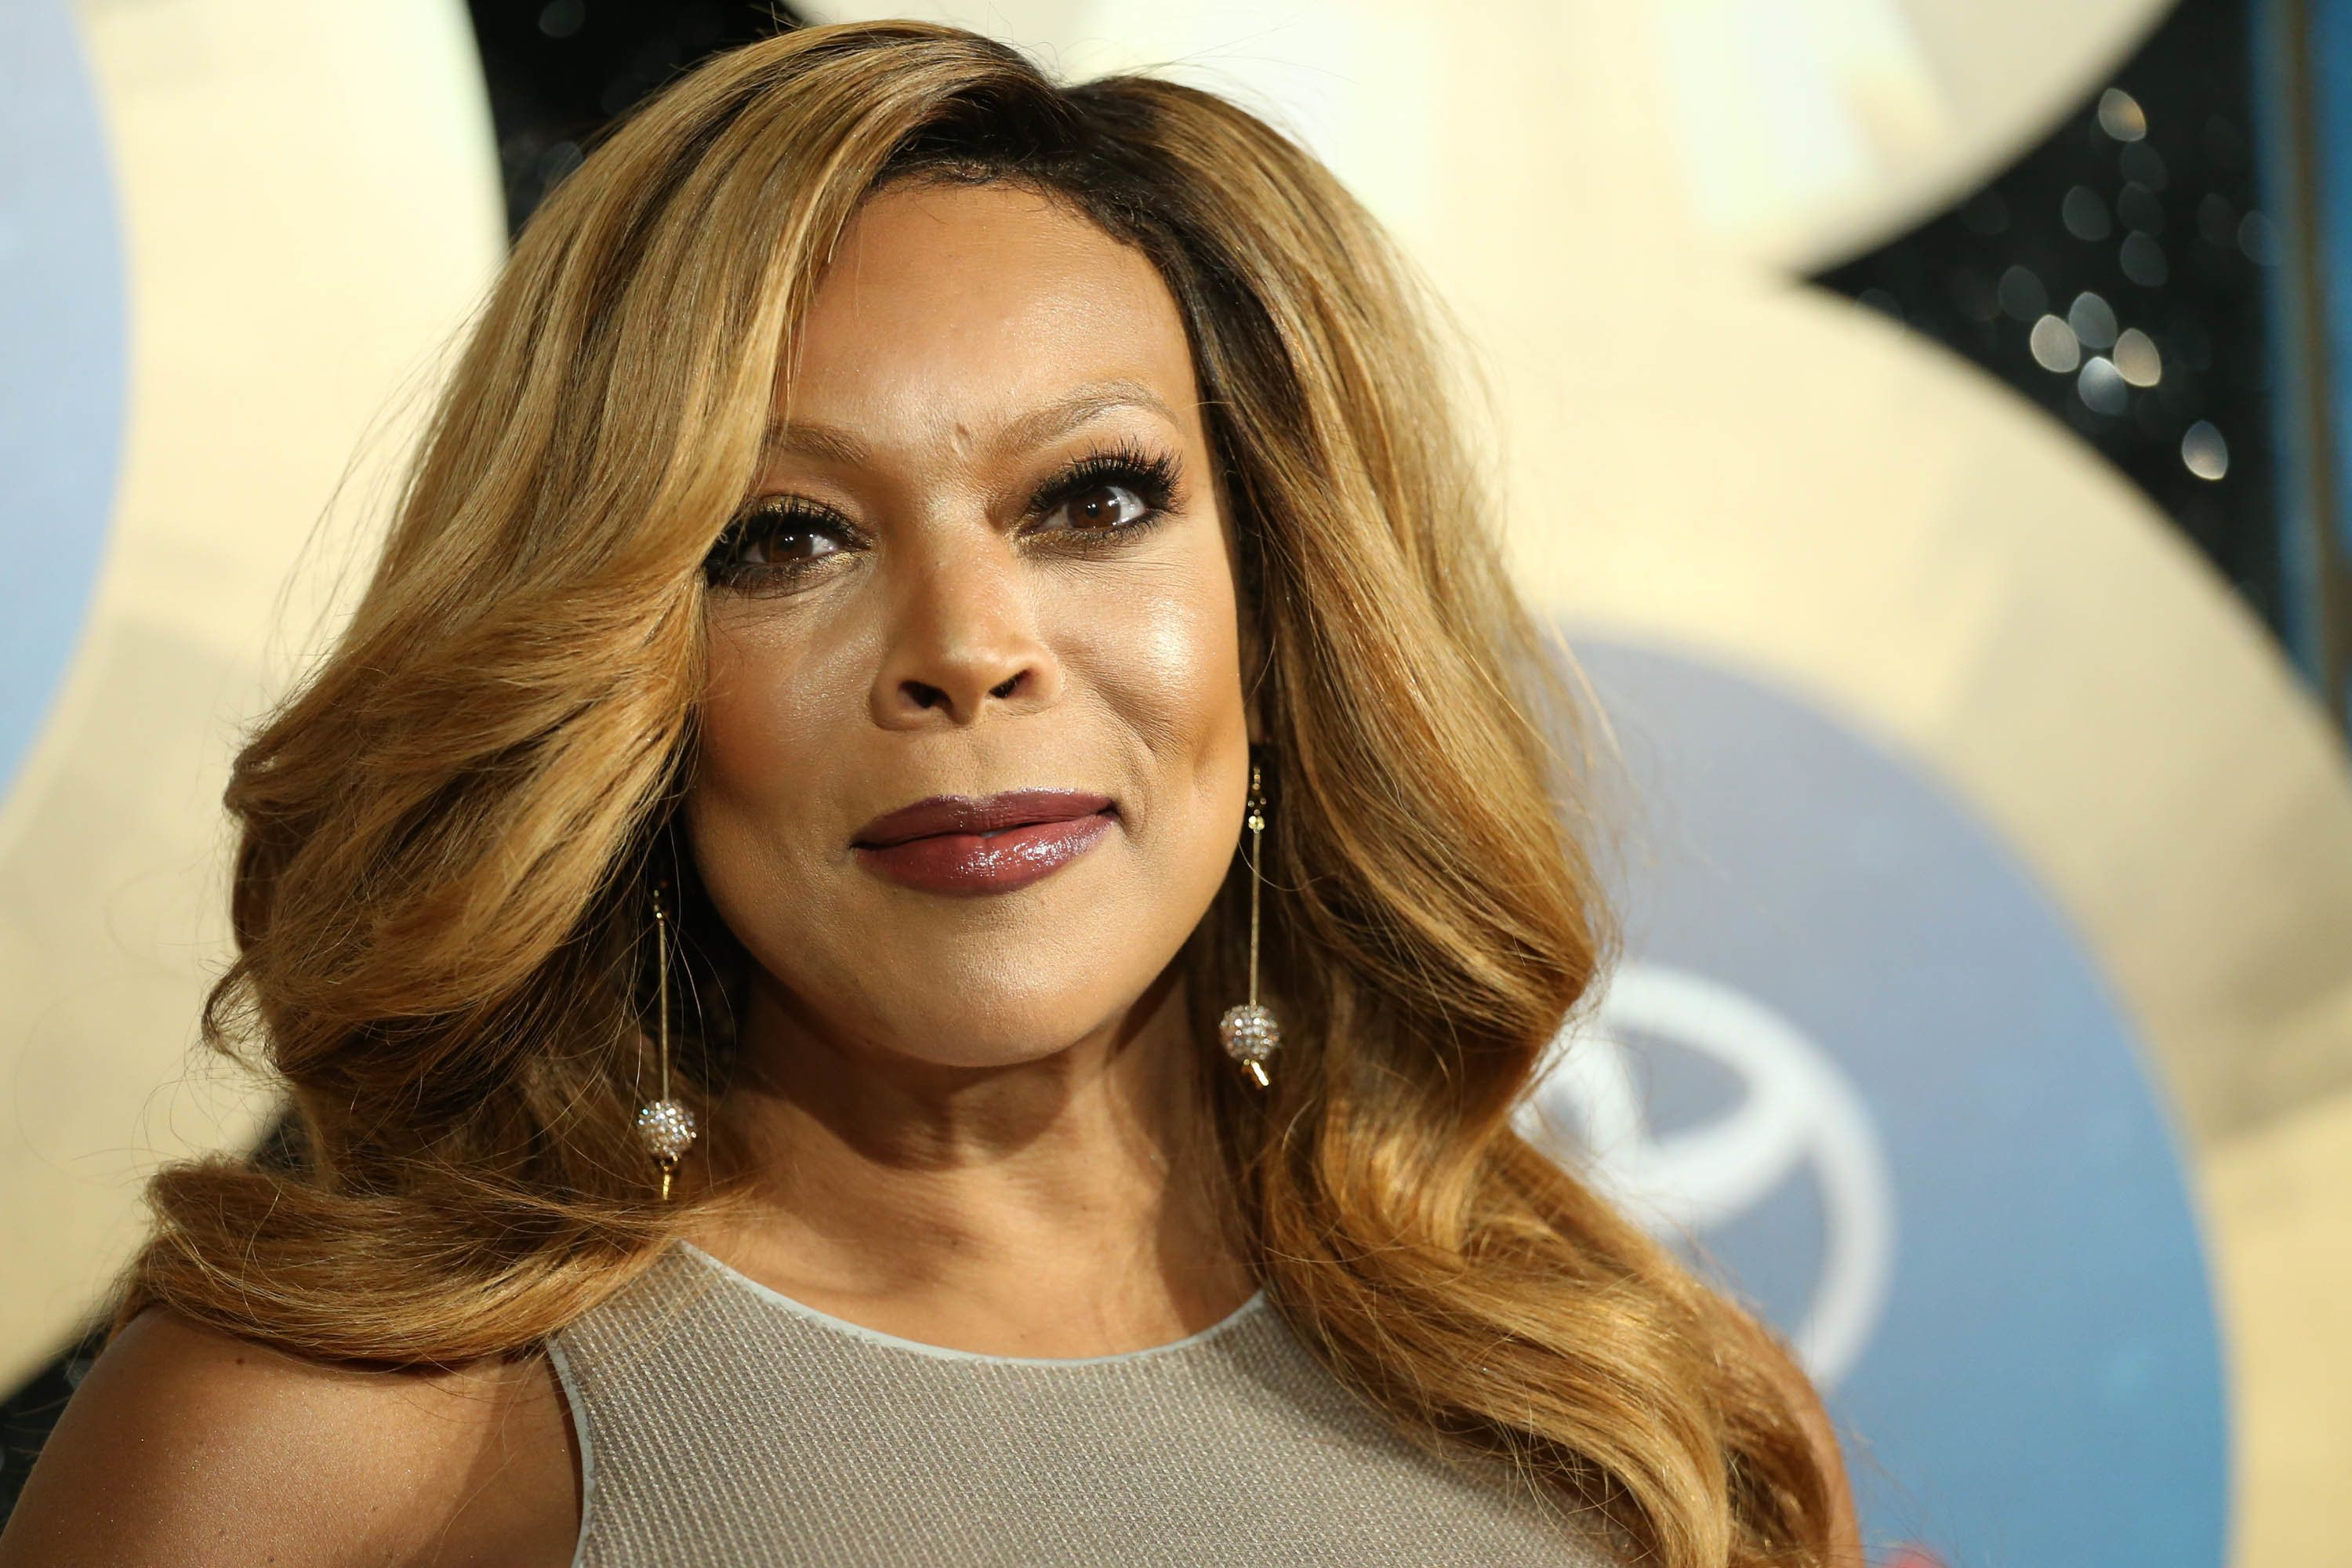 "FILE - In this Nov. 7, 2014, file photo, TV talk show host Wendy Williams arrives during the 2014 Soul Train Awards in Las Vegas. Williams has hosted her own talk show since 2008. Williams blatantly stole the ""Hot Topics"" idea from, ""The View"" and expanded the amount of time she chats about pop culture and current events. Monday's shows are entirely devoted to ""Hot Topics."" (Photo by Omar Vega/Invision/AP, File)"